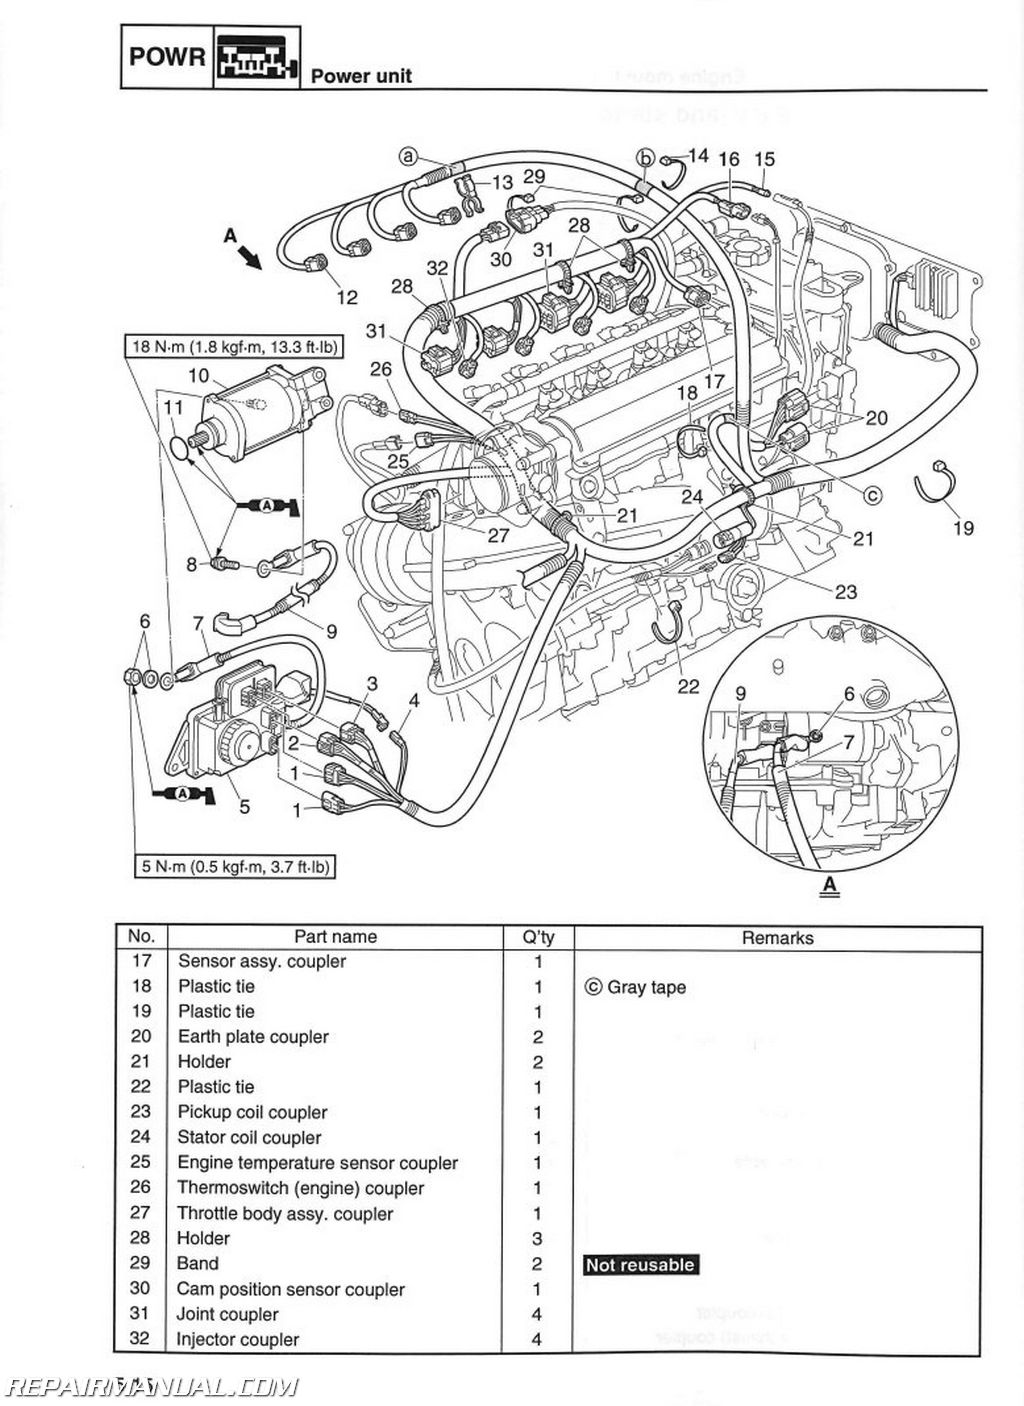 2010-2014 yamaha vx1100 cruiser deluxe 2015 v1 sport ... waverunner engine diagram yamaha waverunner wiring diagram